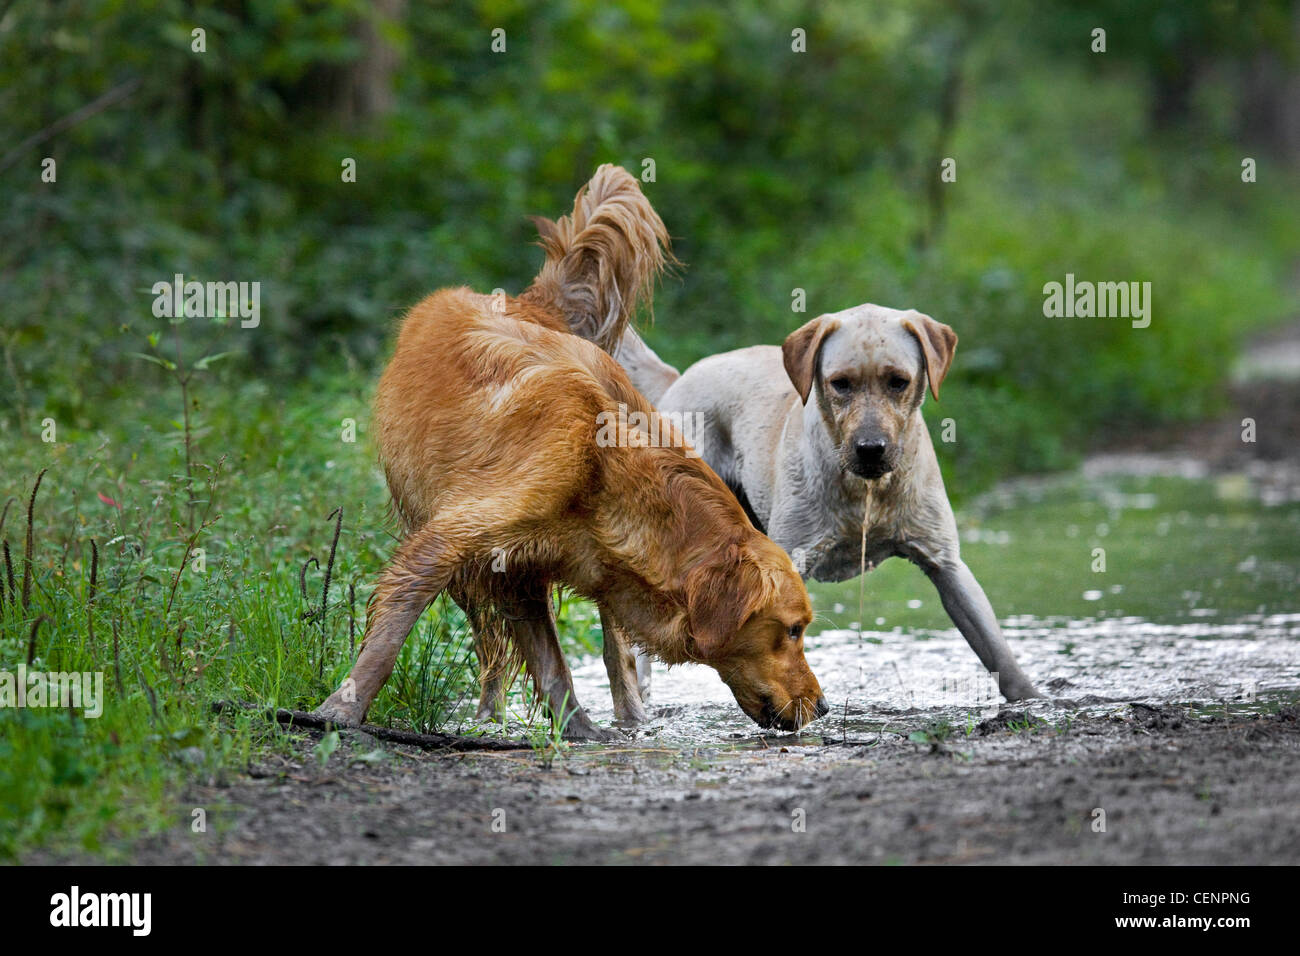 Thirsty Golden retriever and labrador dogs drinking water from muddy puddle on track in forest, Belgium - Stock Image